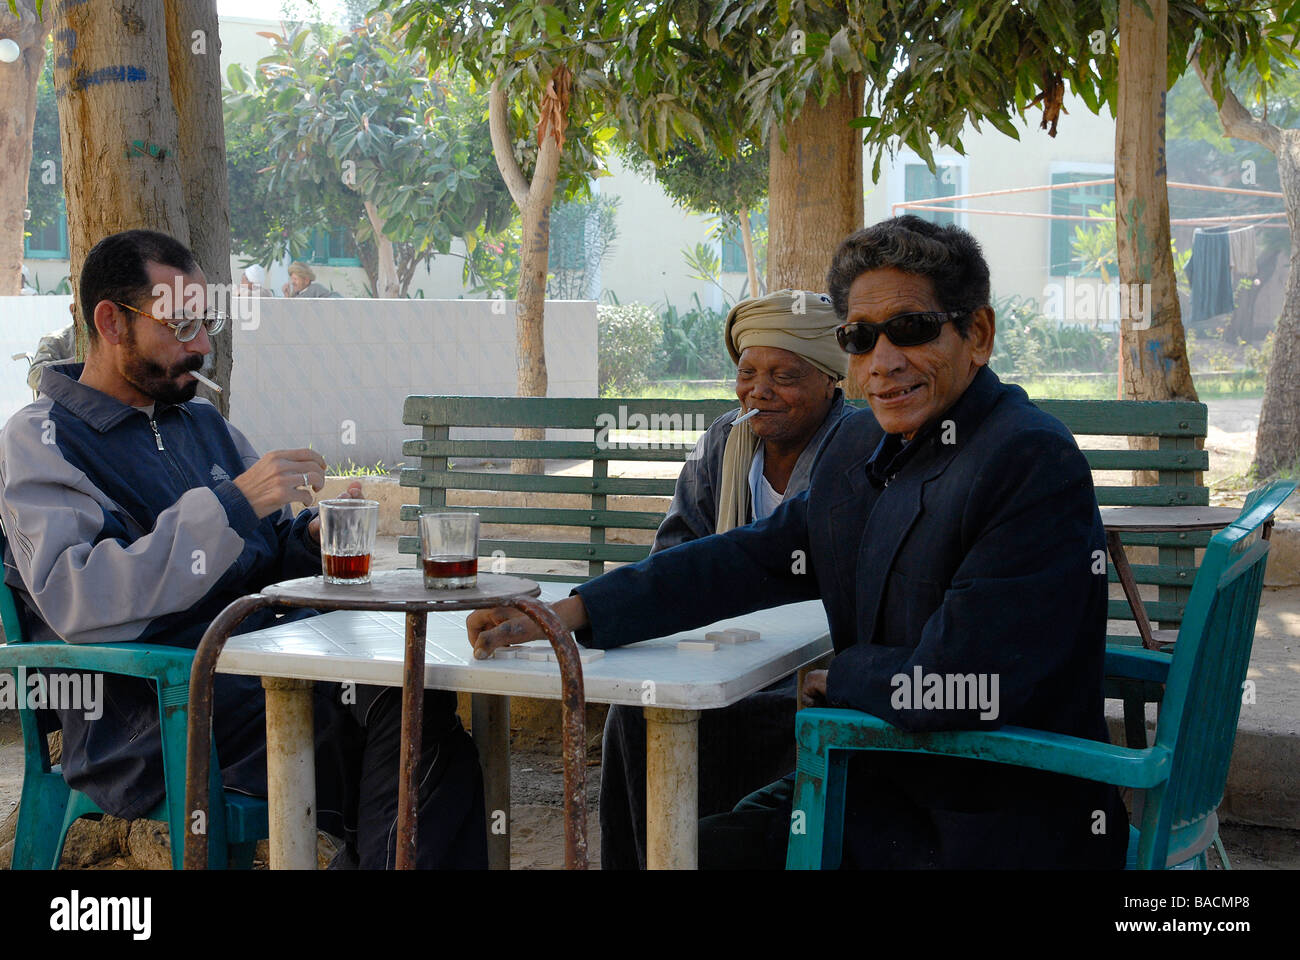 Three leprosy patients are playing domino in the hospital garden in Egypt's leprosy colony Abu Zaabal - Stock Image